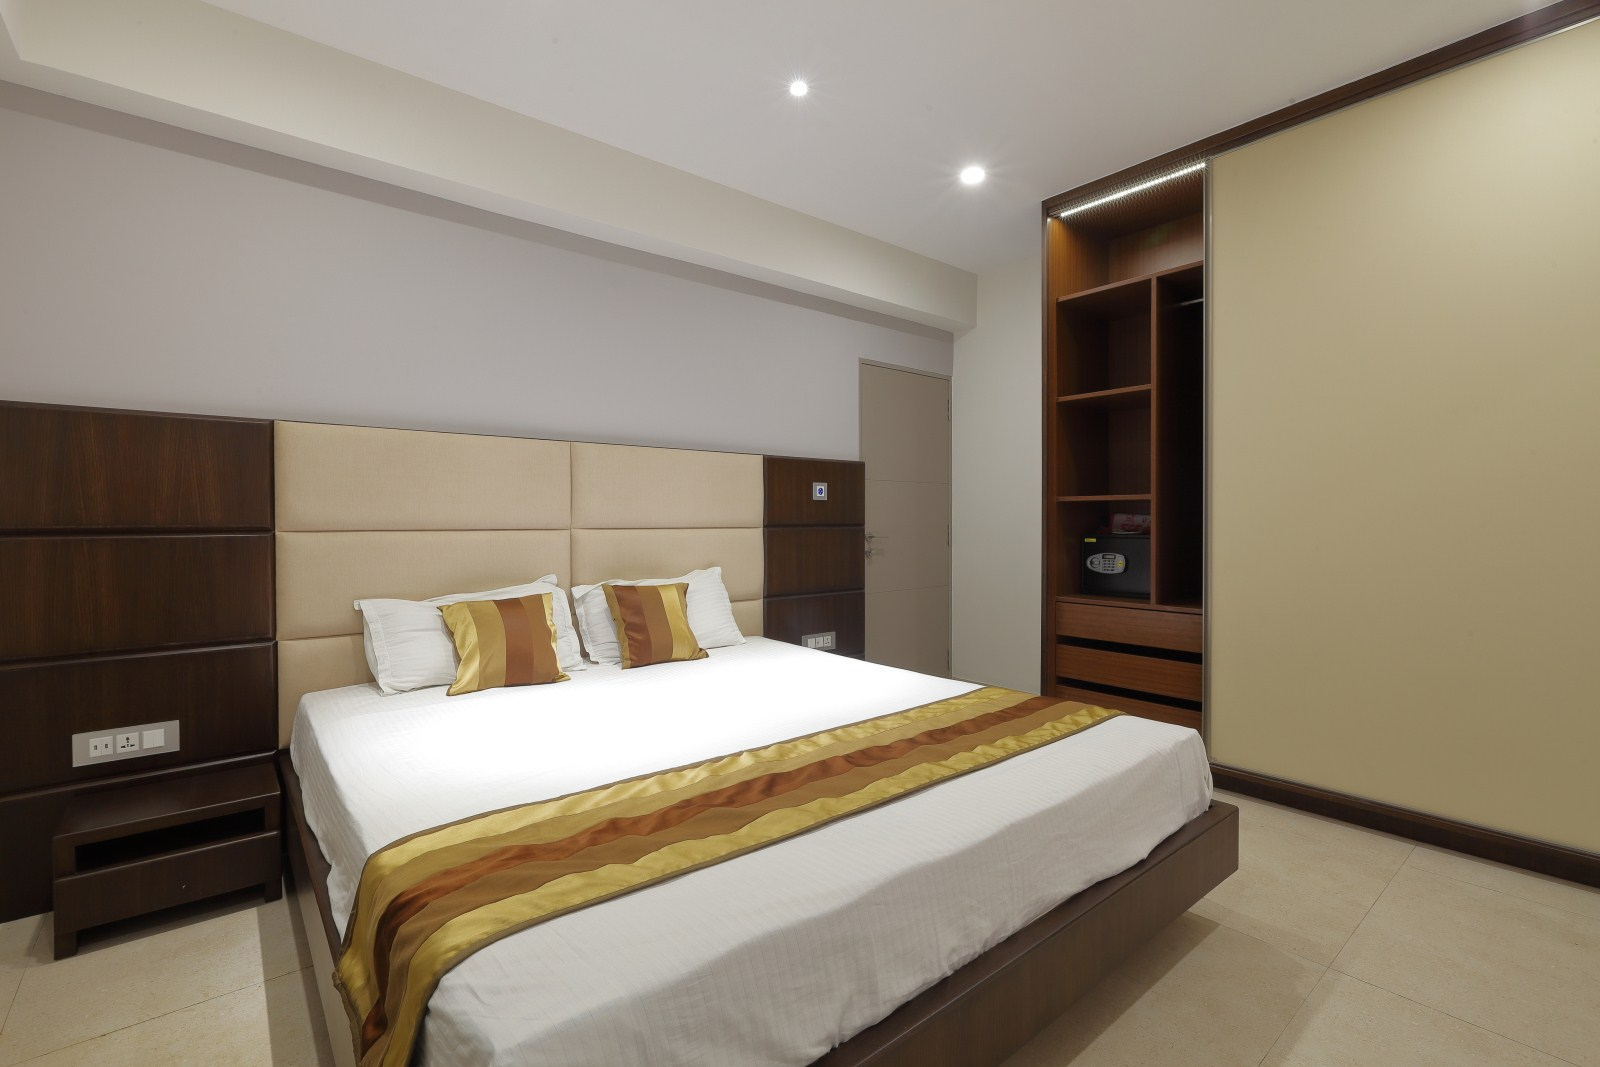 Interior design cost of a bedroom